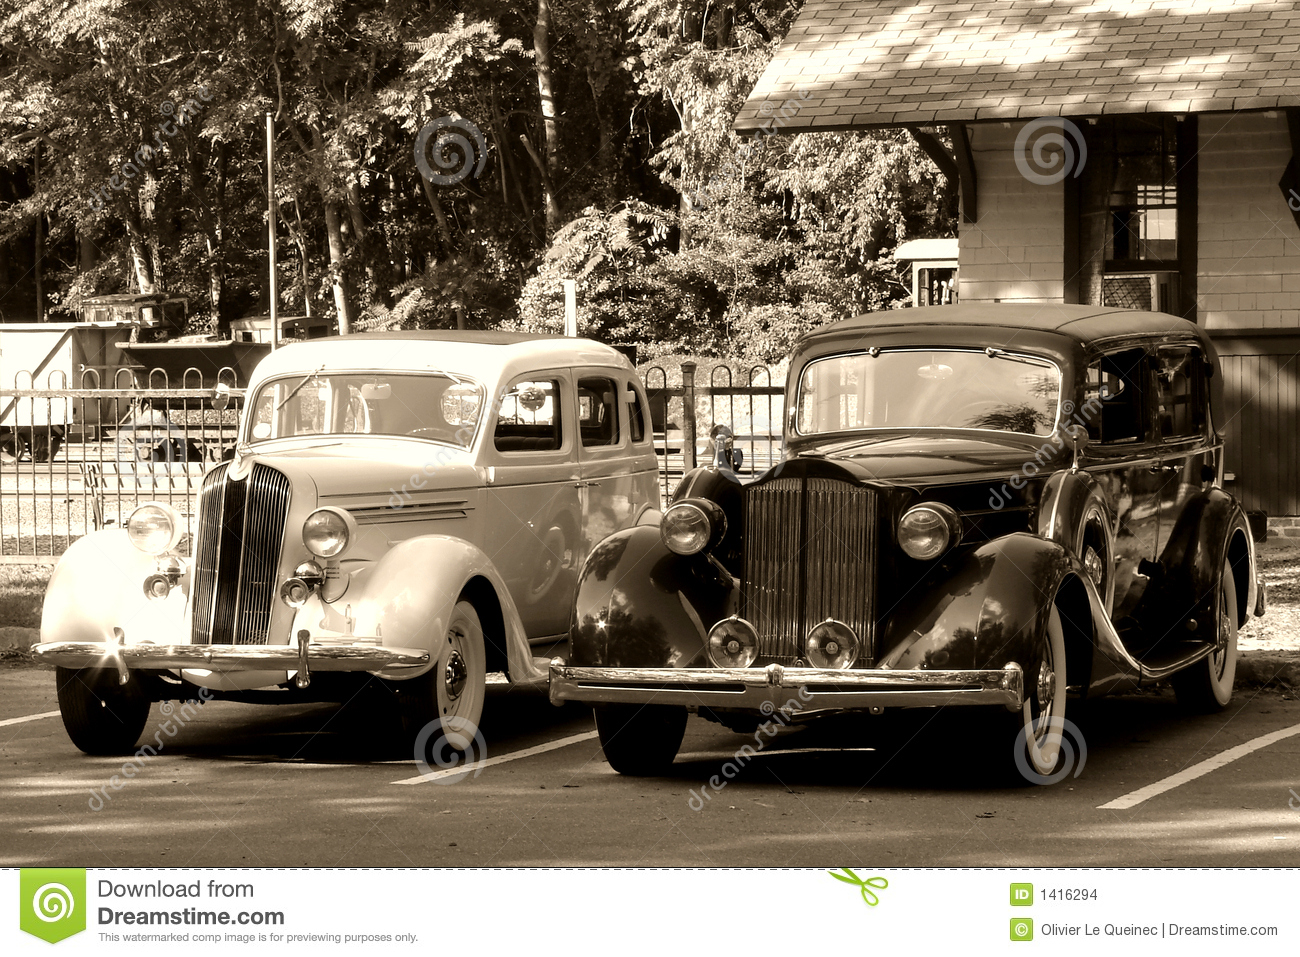 Vintage Automobiles At An Antique Train Station Stock Photo - Image ...